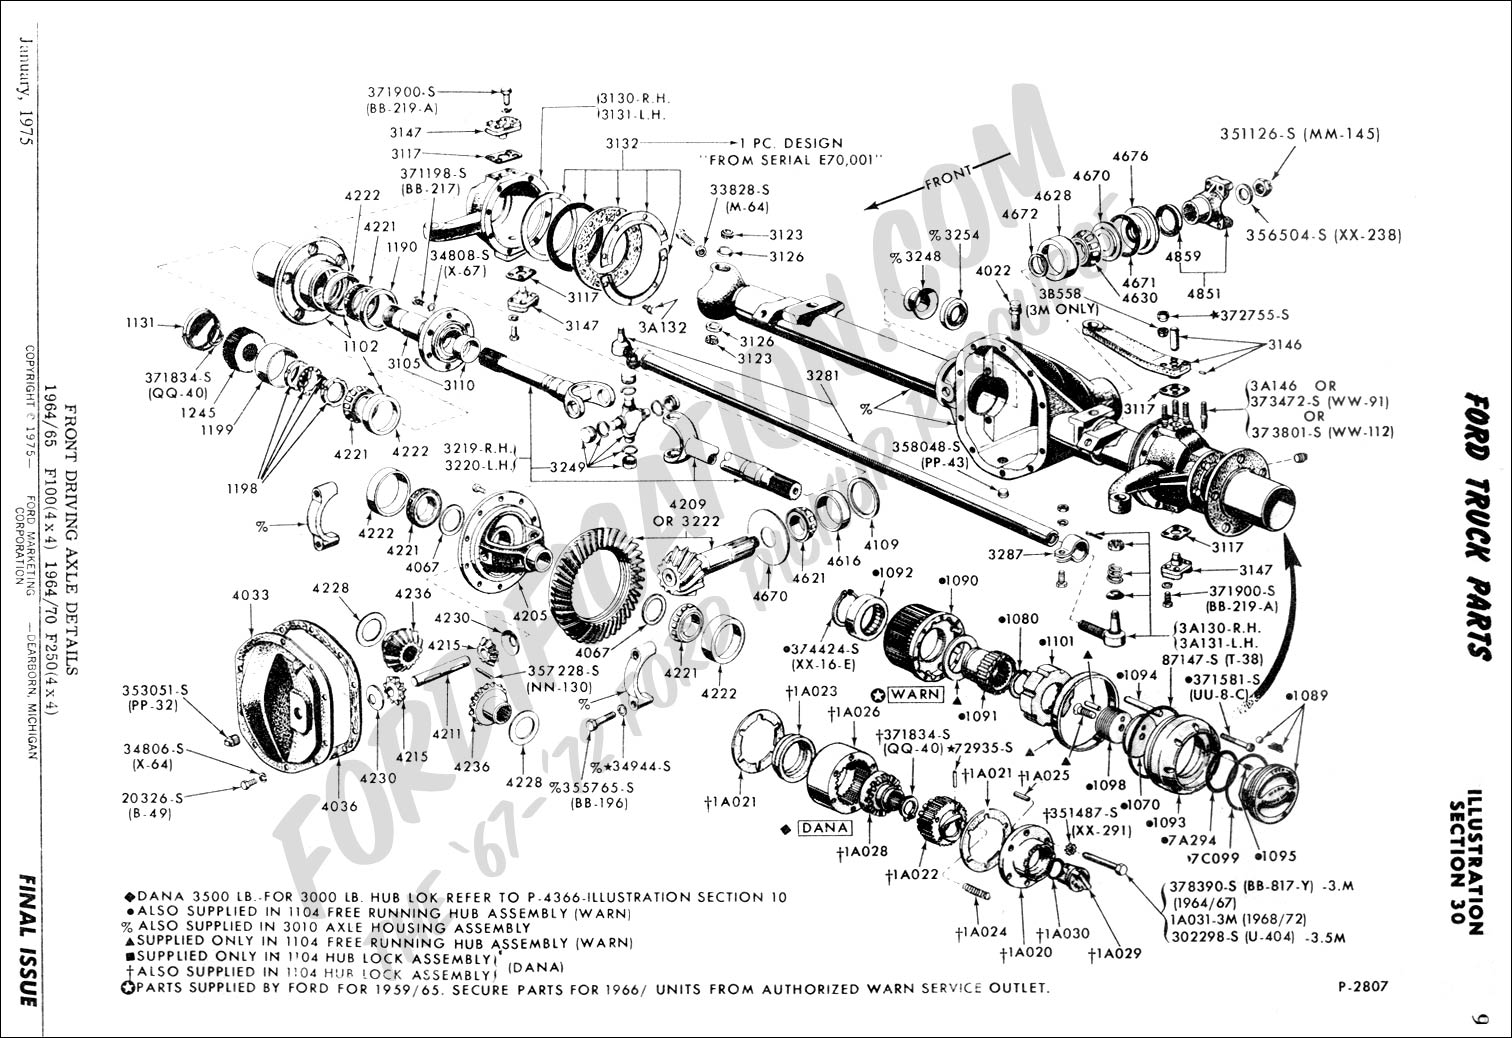 Ford Truck Technical Drawings And Schematics Section A Front 2000 F550 Wiring Diagram Rear Axle Assemblies Suspensions